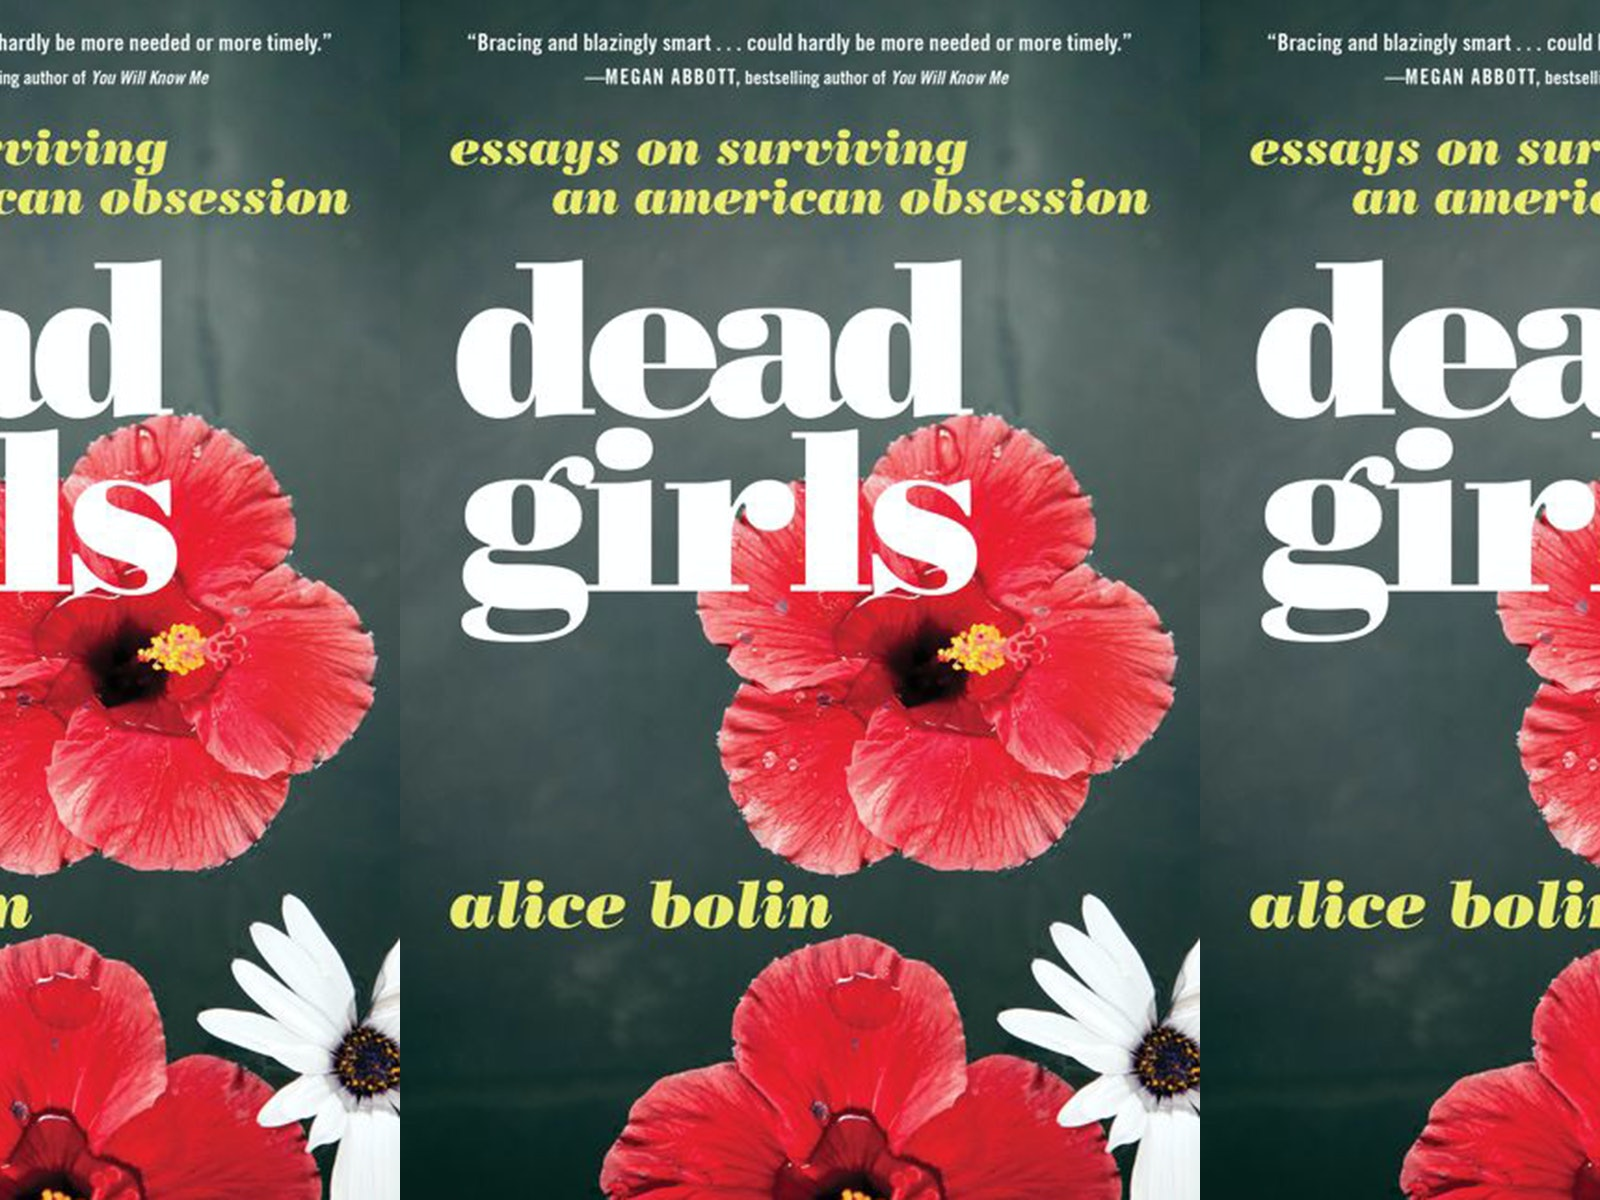 Alice bolins dead girls contains one essay that could explain why alice bolins dead girls contains one essay that could explain why women are so attracted to magic izmirmasajfo